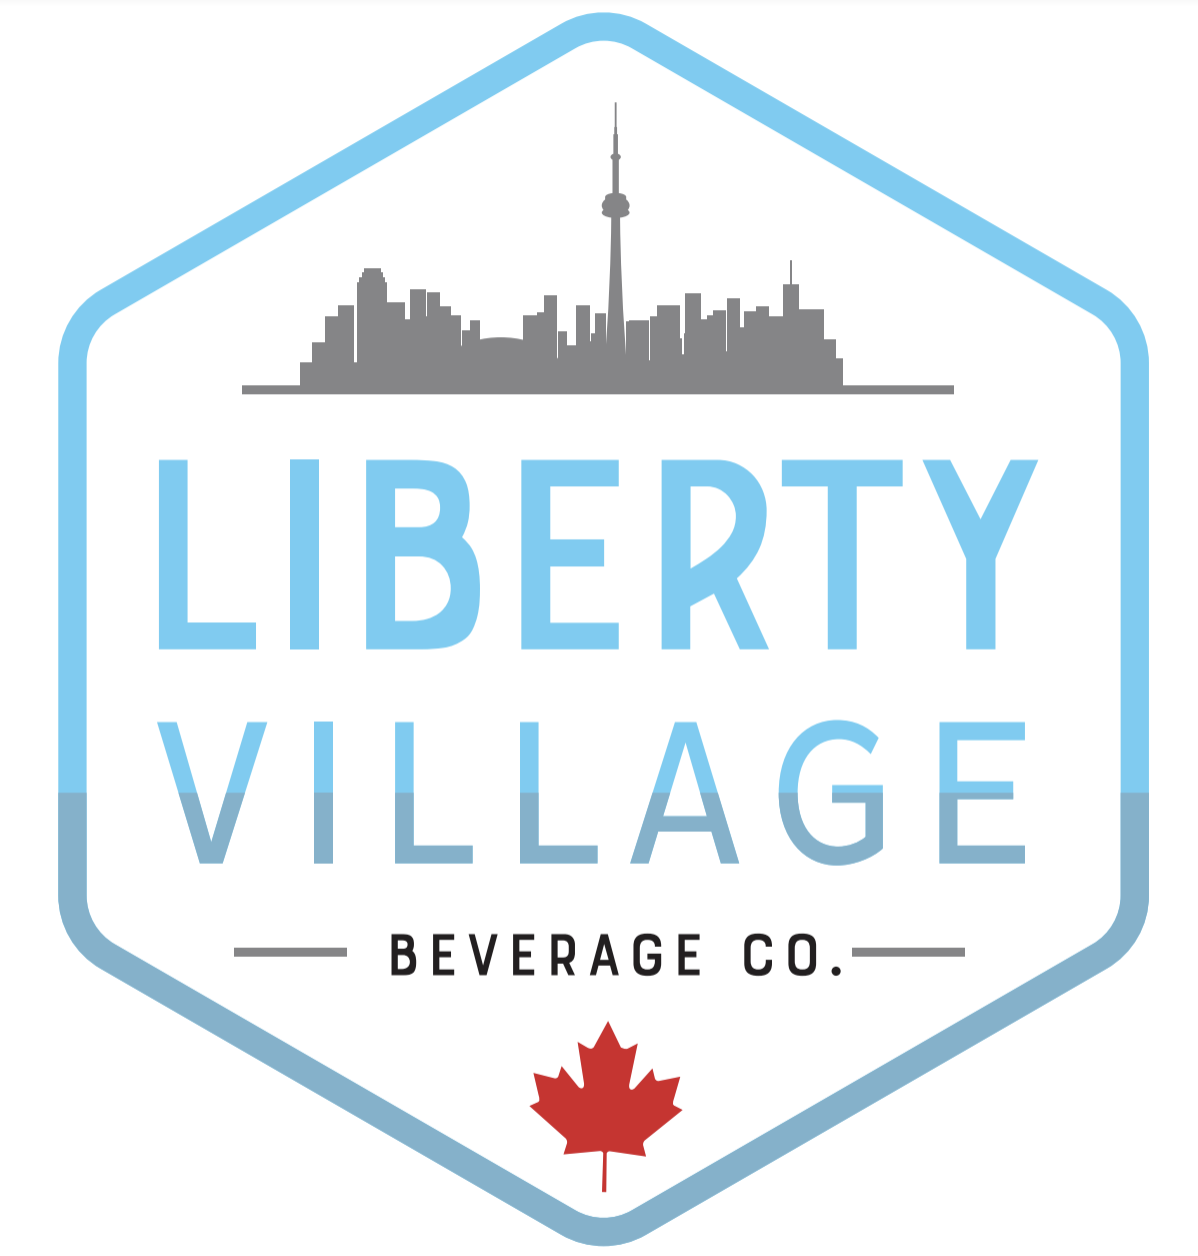 Liberty Village Beverage Co.